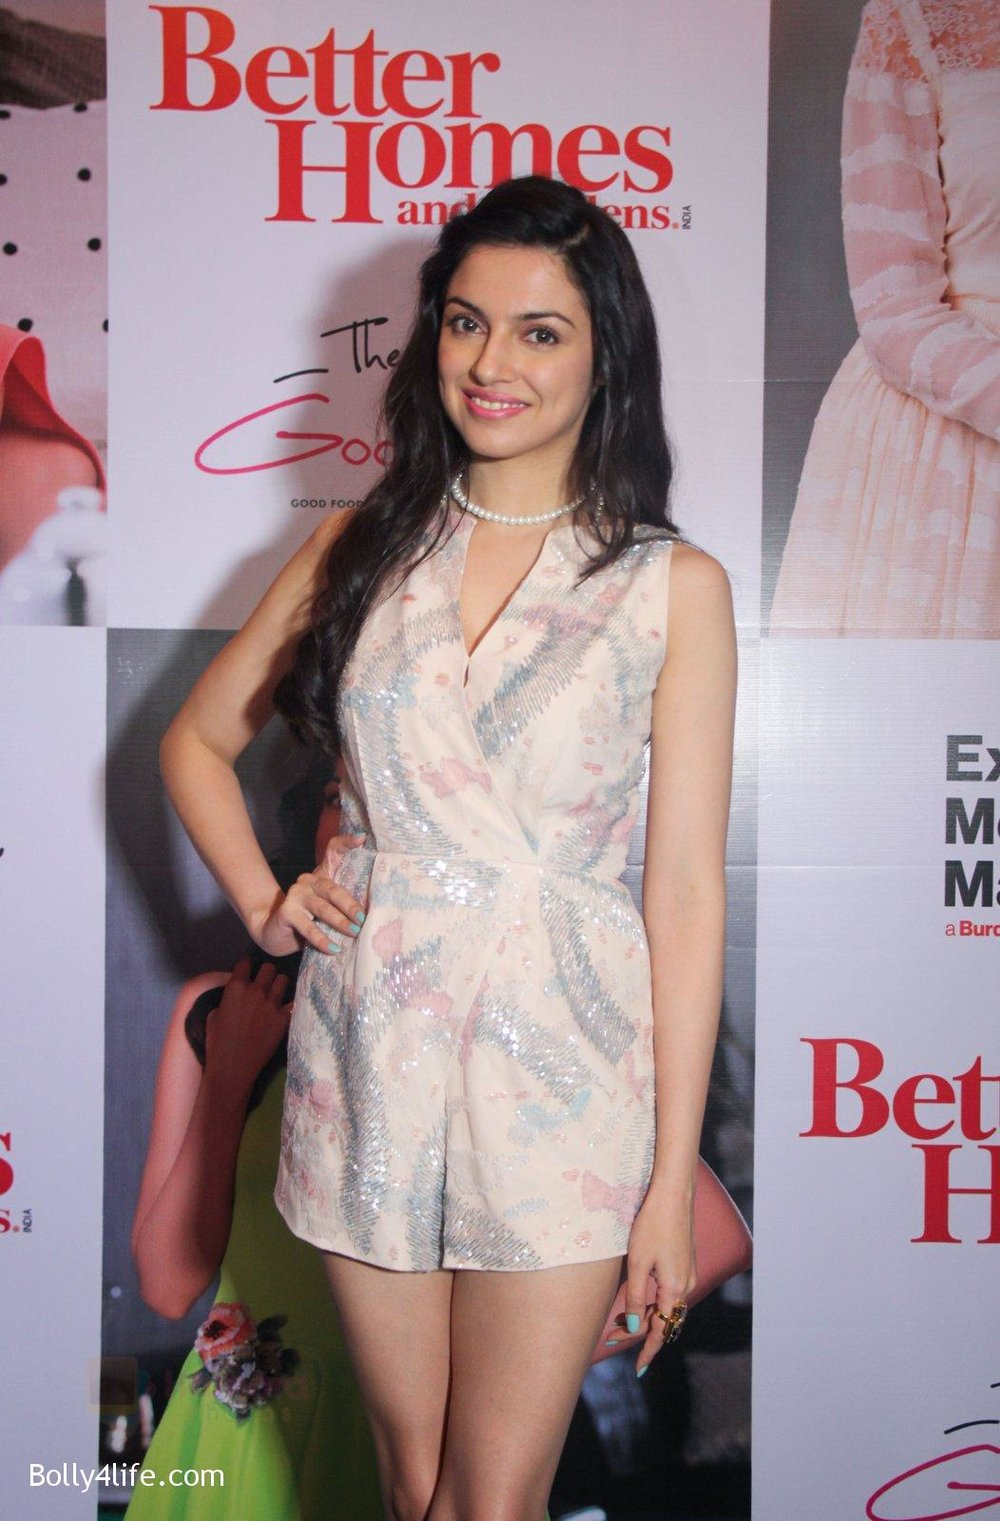 Divya-Khosla-Kumar-graces-the-success-party-celebrating-the-cover-story-of-Better-Homes-Gard-on-14th-Sept-2016-7.jpg